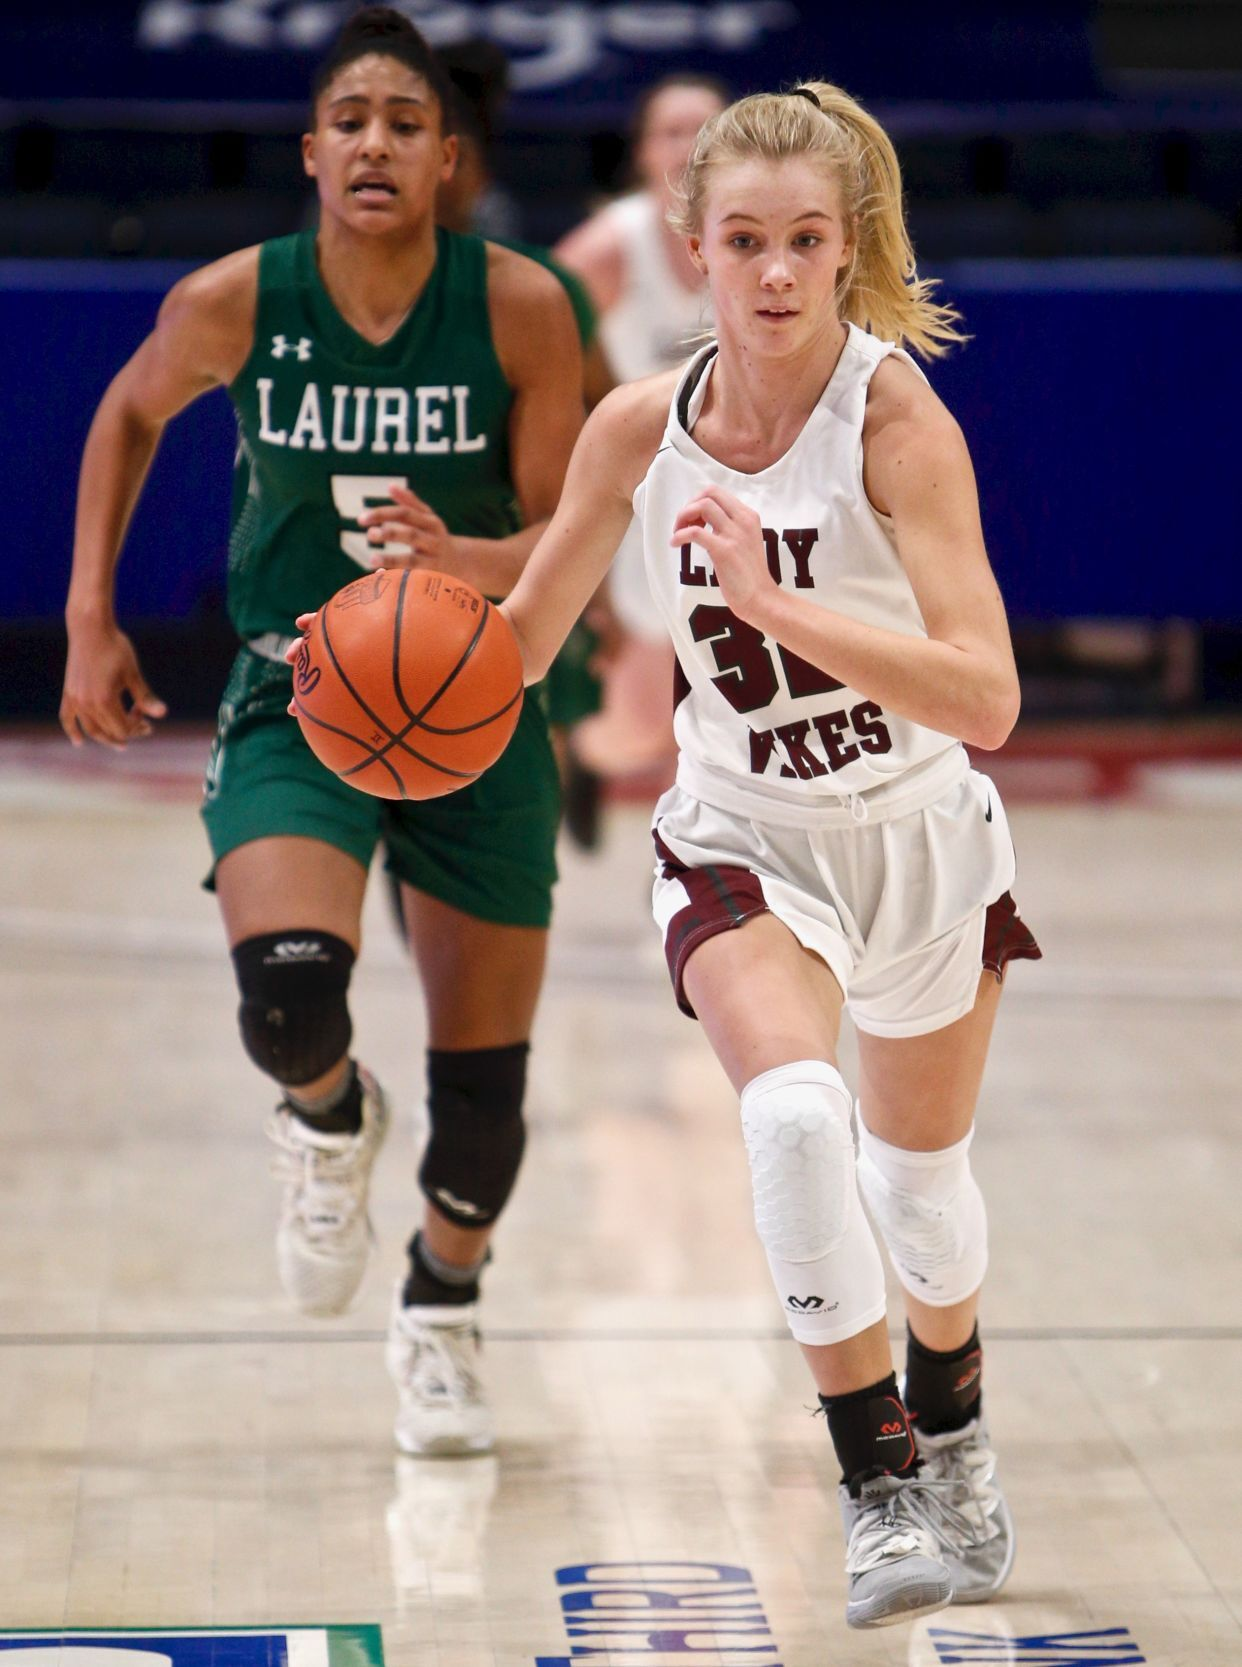 Vinton County beats Shaker Heights Laurel